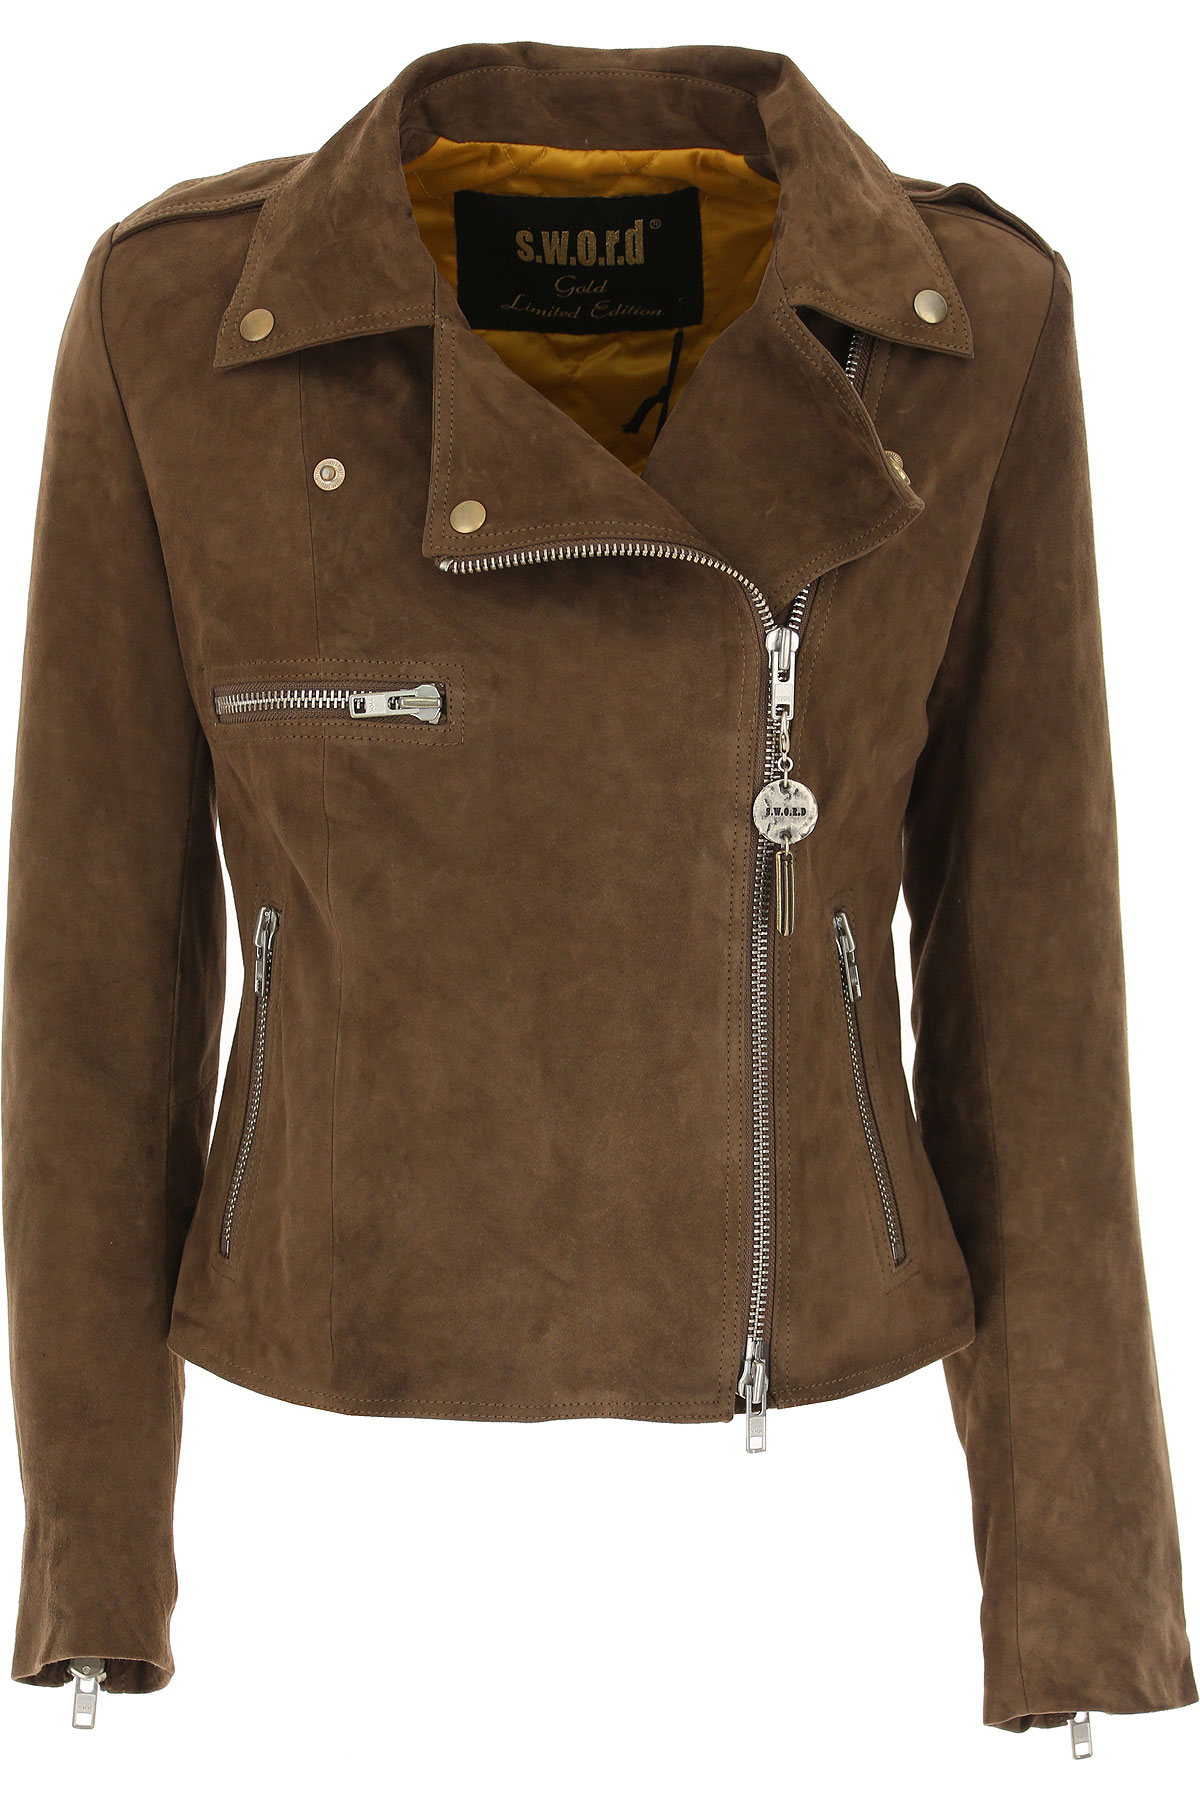 Image of S.W.O.R.D Leather Jacket for Women, Mud, Suede leather, 2017, FR 34 • IT 38 FR 36 • IT 40 FR 38 • IT 42 FR 40 • IT 44